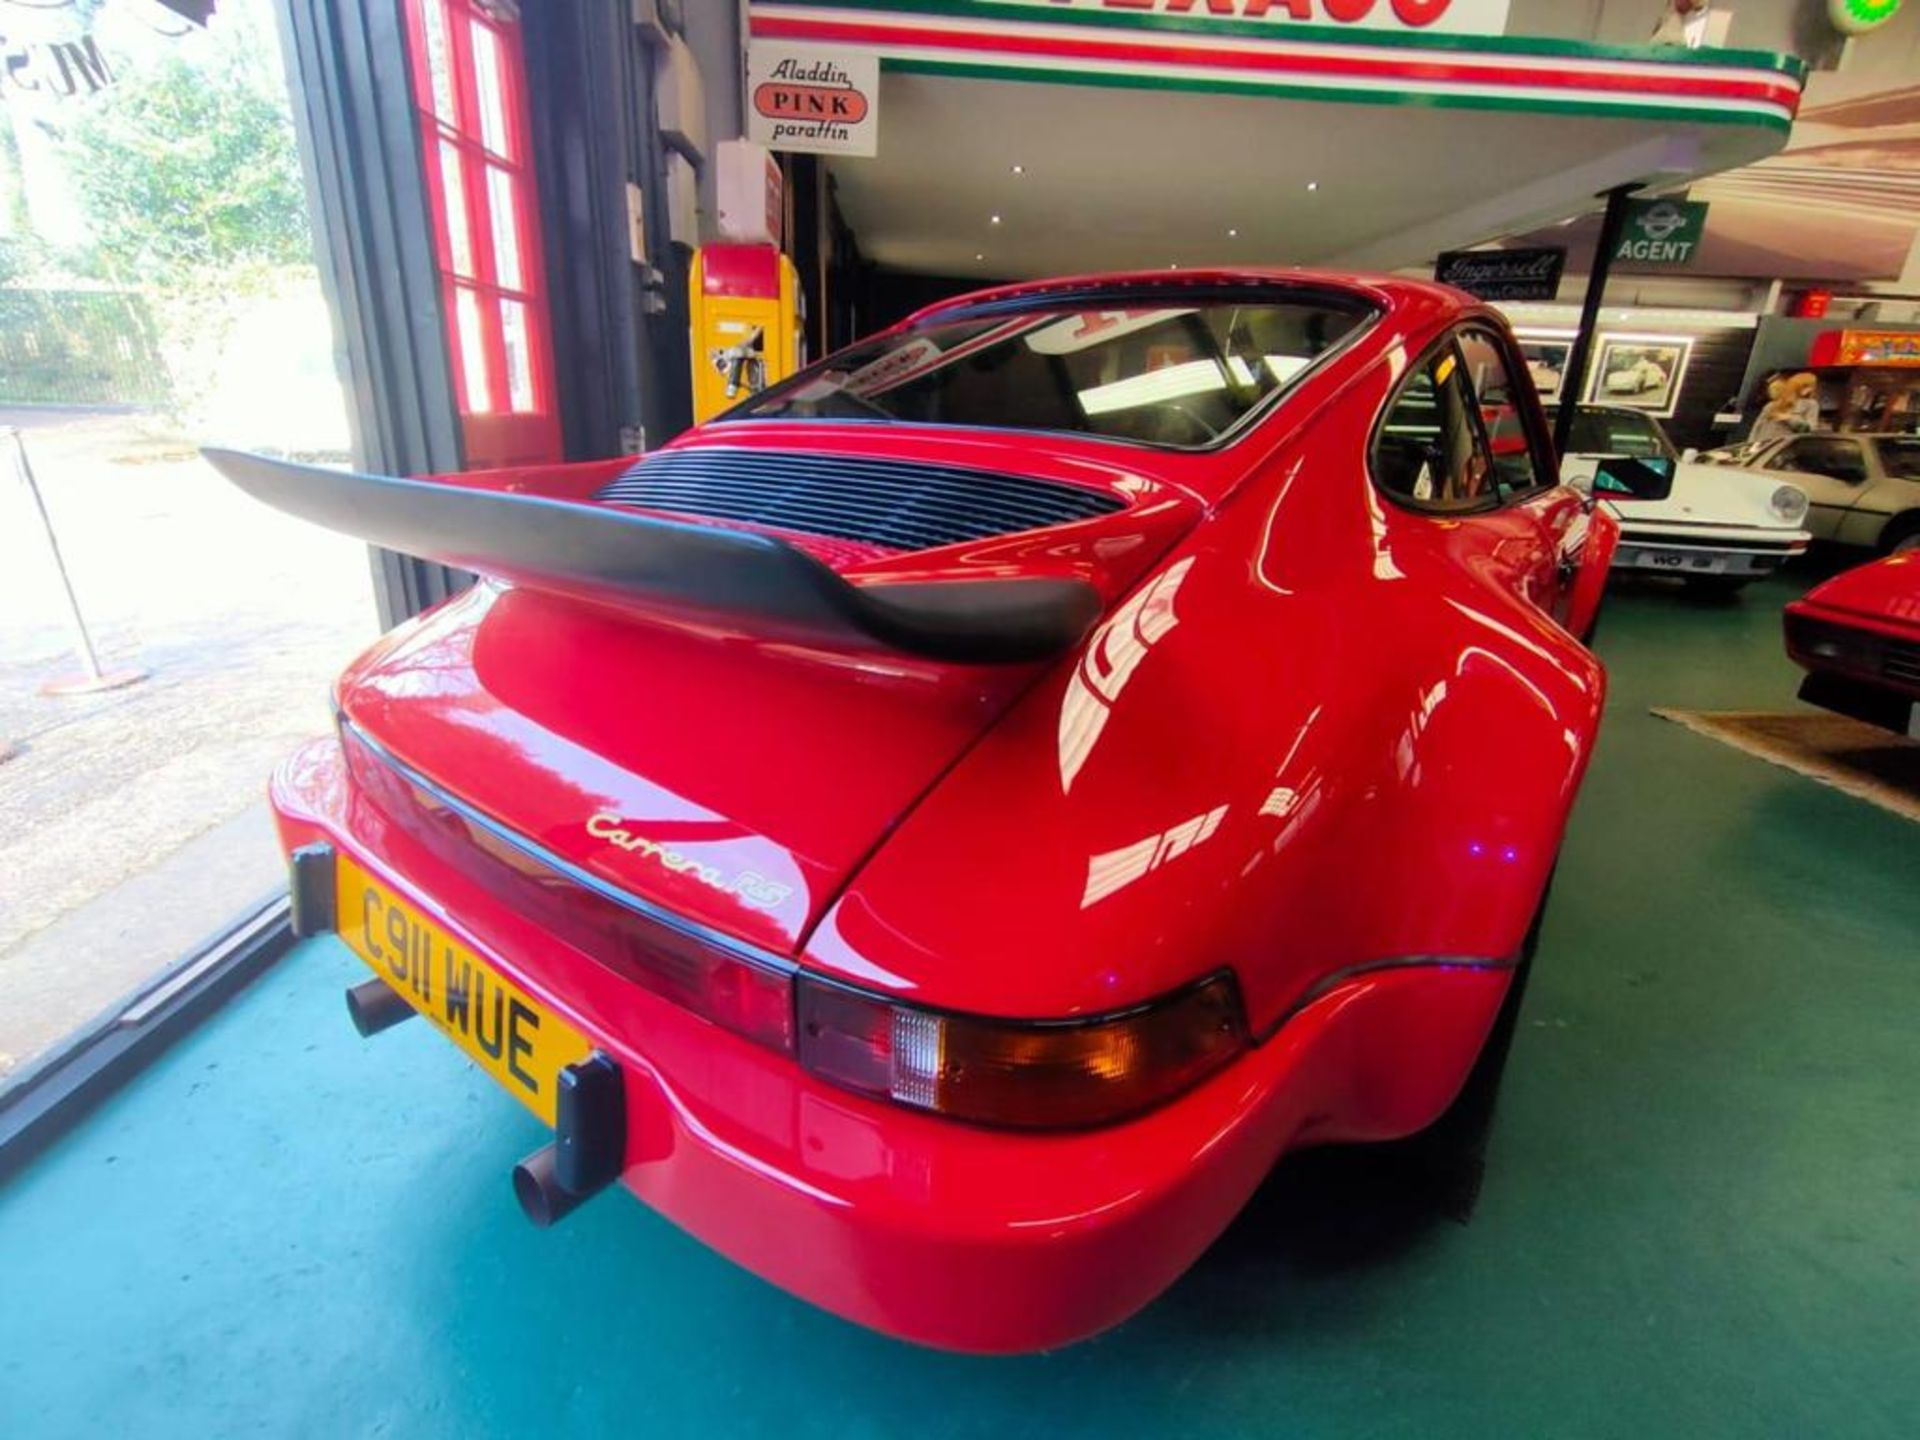 1980 Porsche 911 sc sport but has been fully rebuilt to be identical to a 1974 911 rsr *NO VAT* - Image 4 of 12